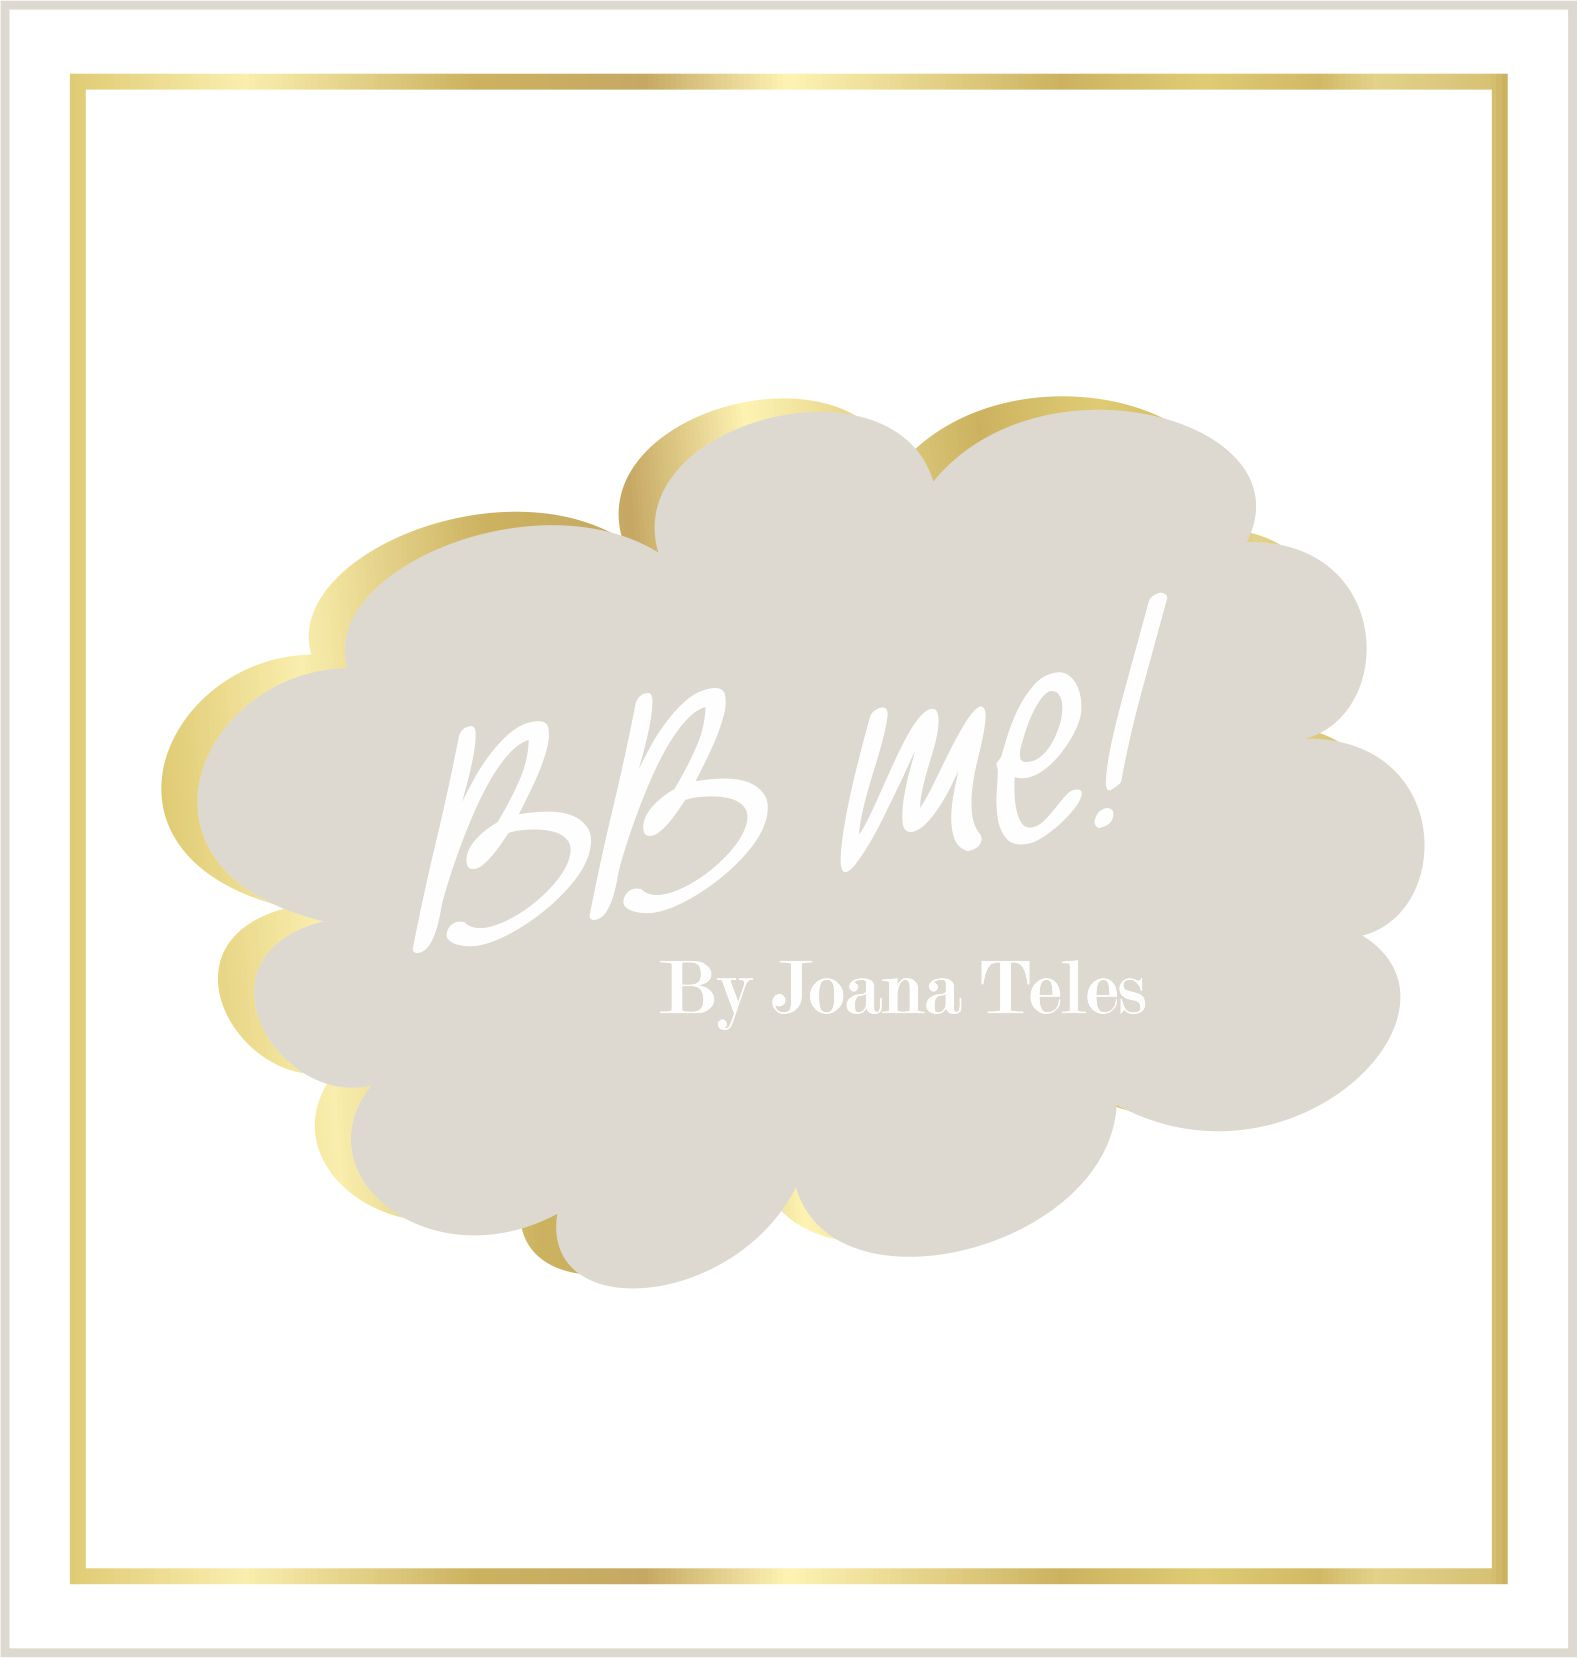 BB me by Joana Teles